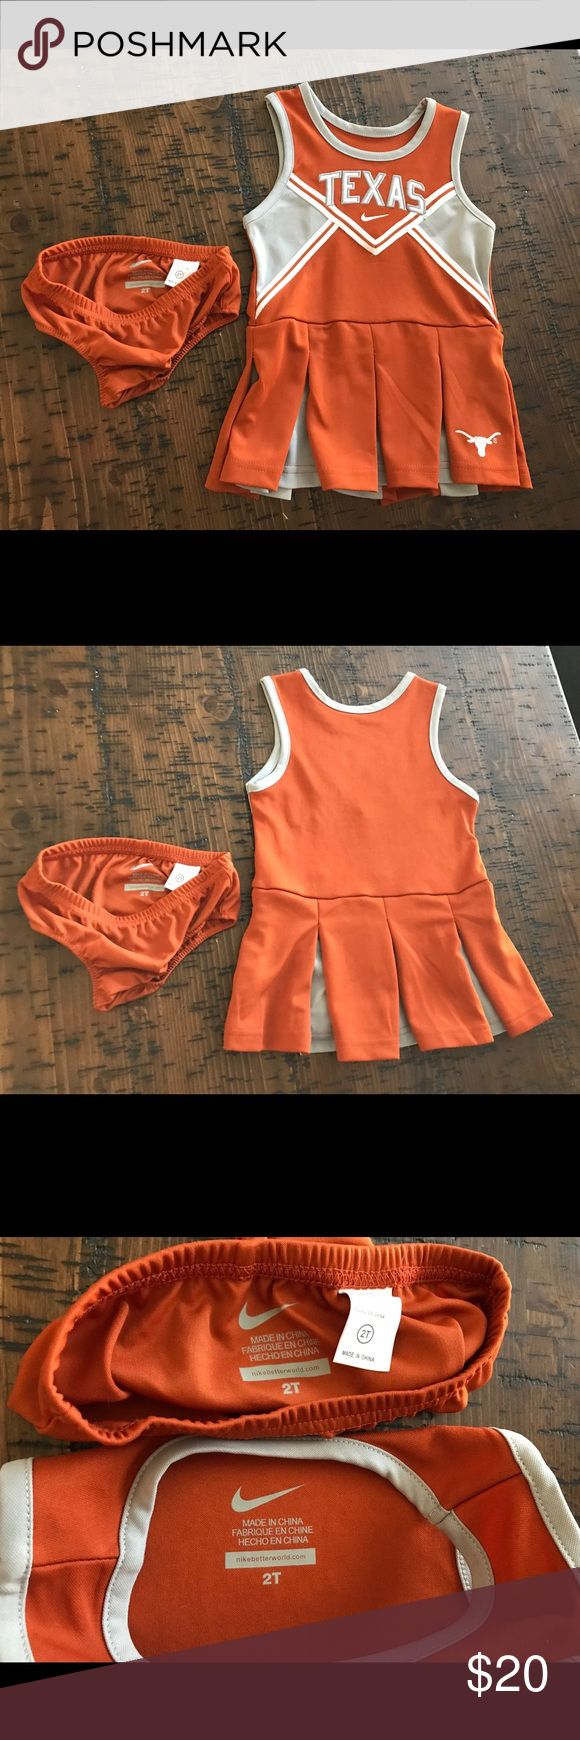 UT Longhorn 2T cheer outfit with matching bloomers EUC worn once for about 30 min Nike Matching Sets